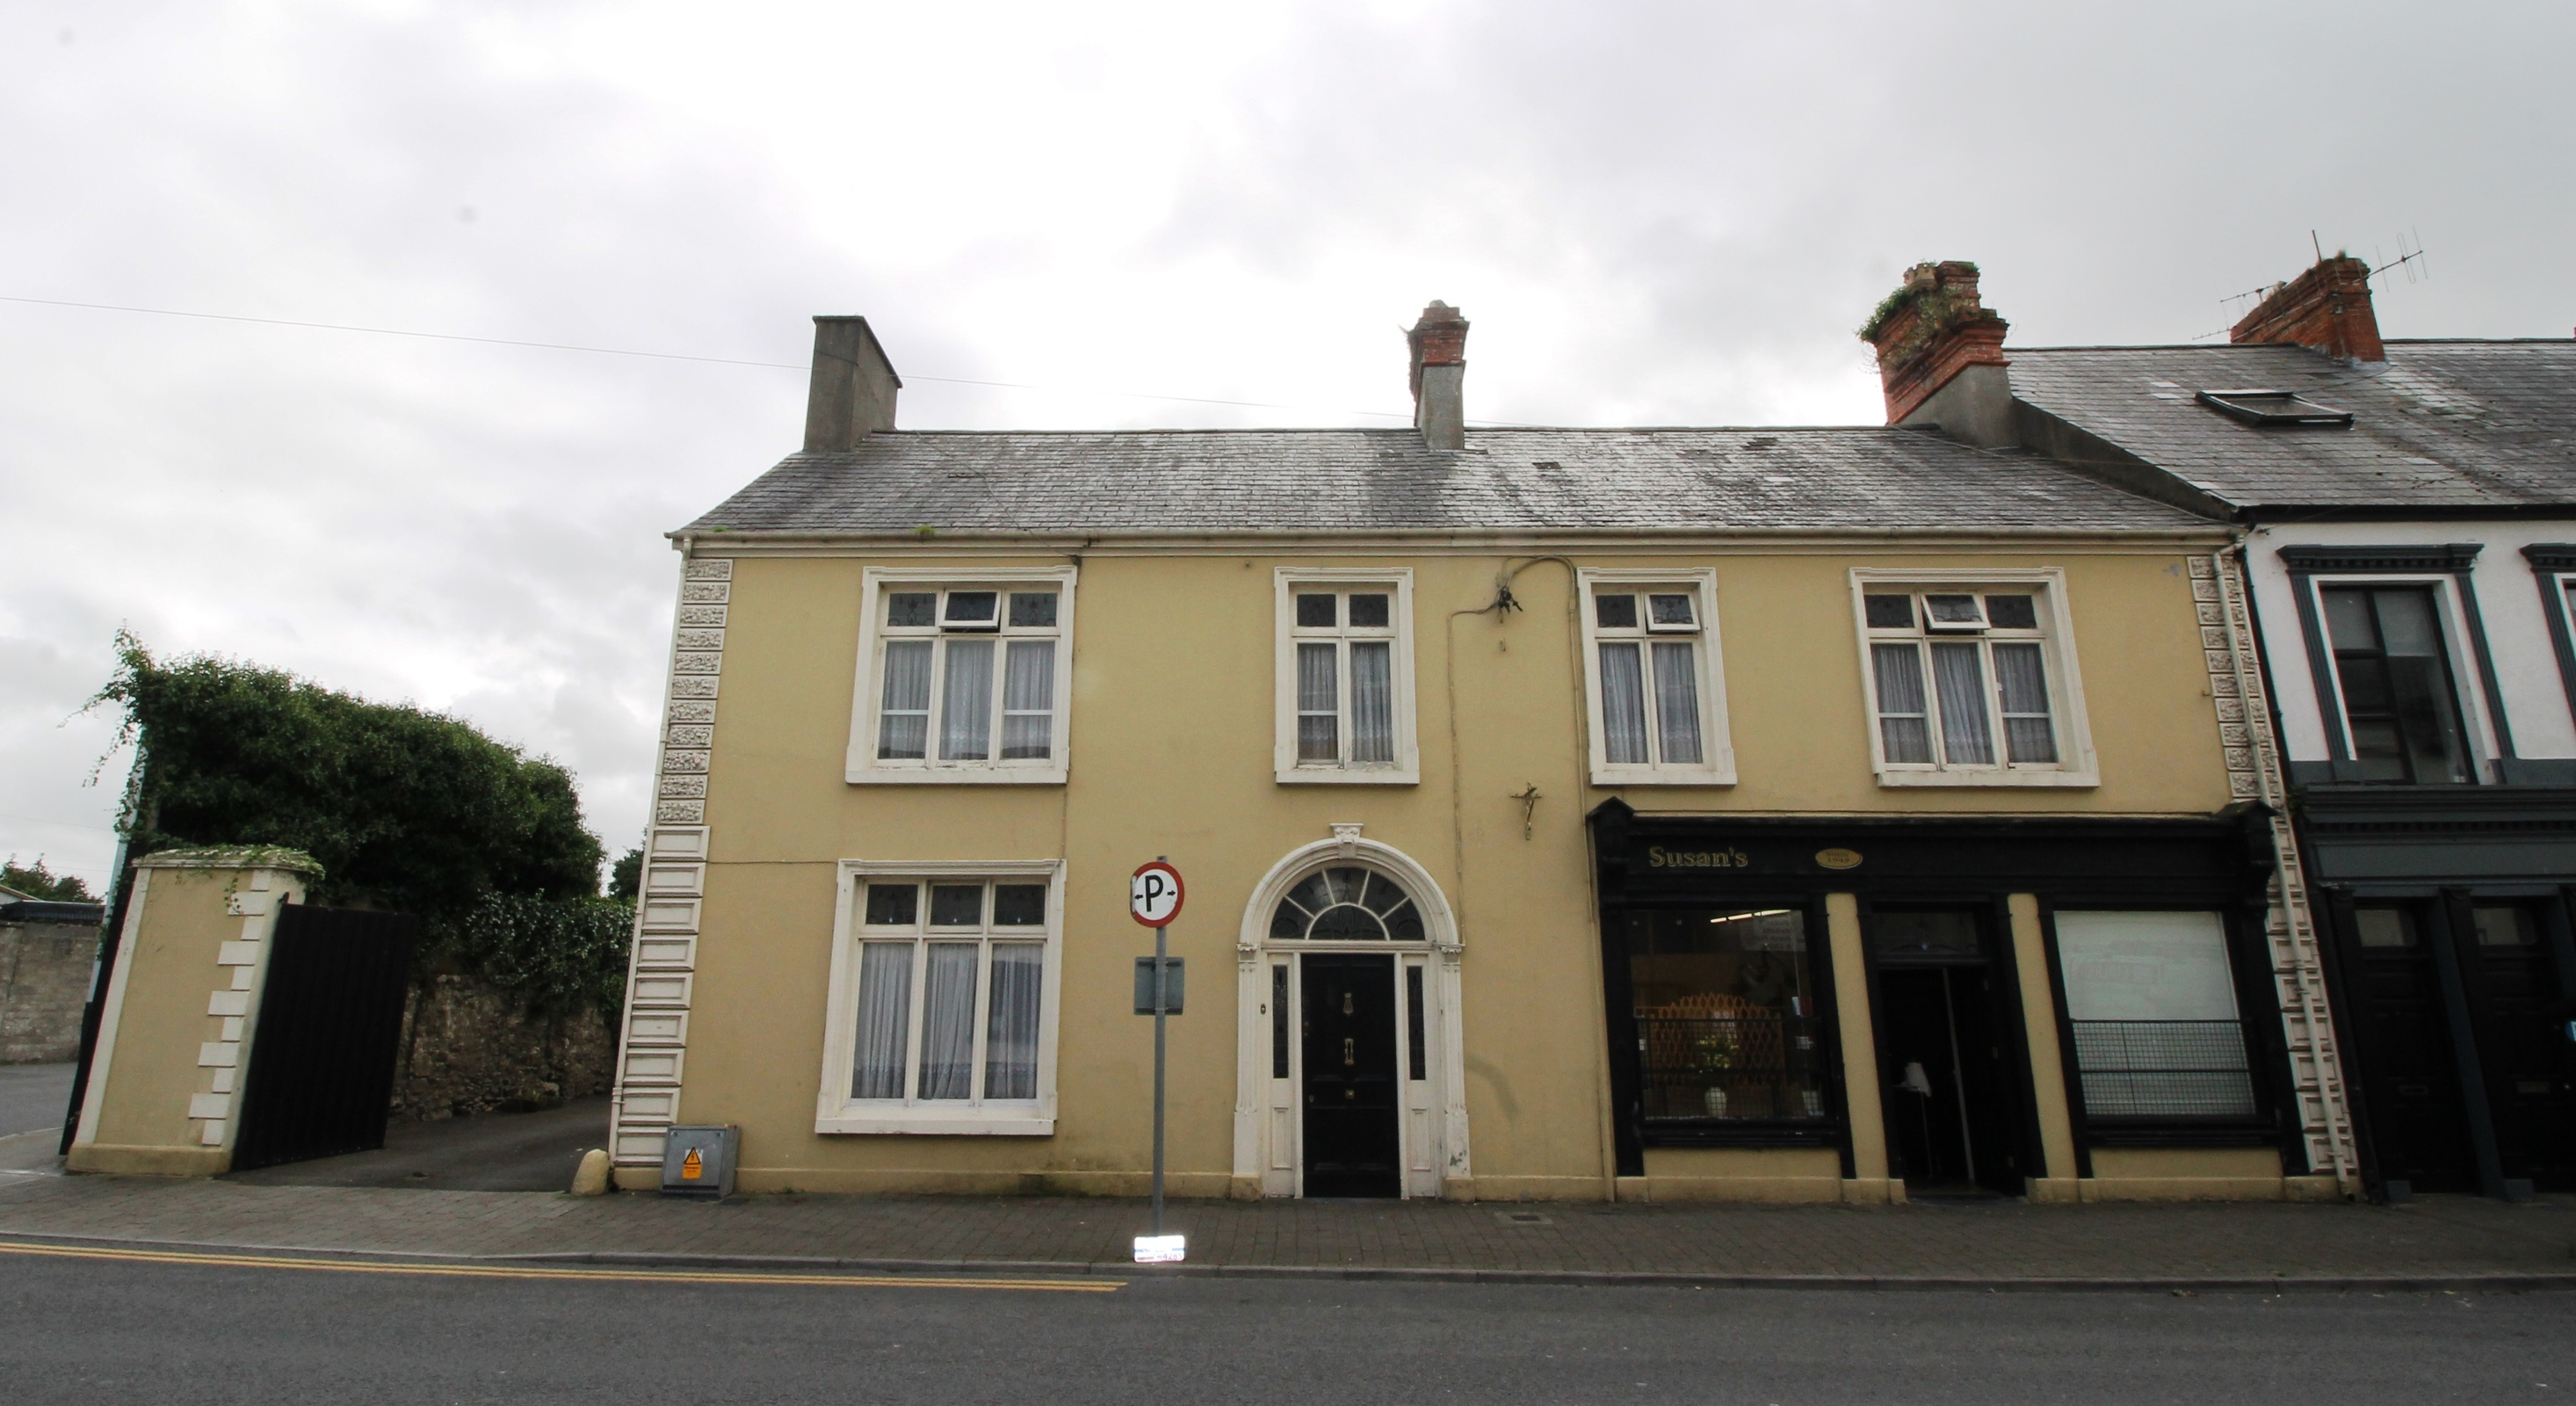 Friar Street, Thurles, Co. Tipperary